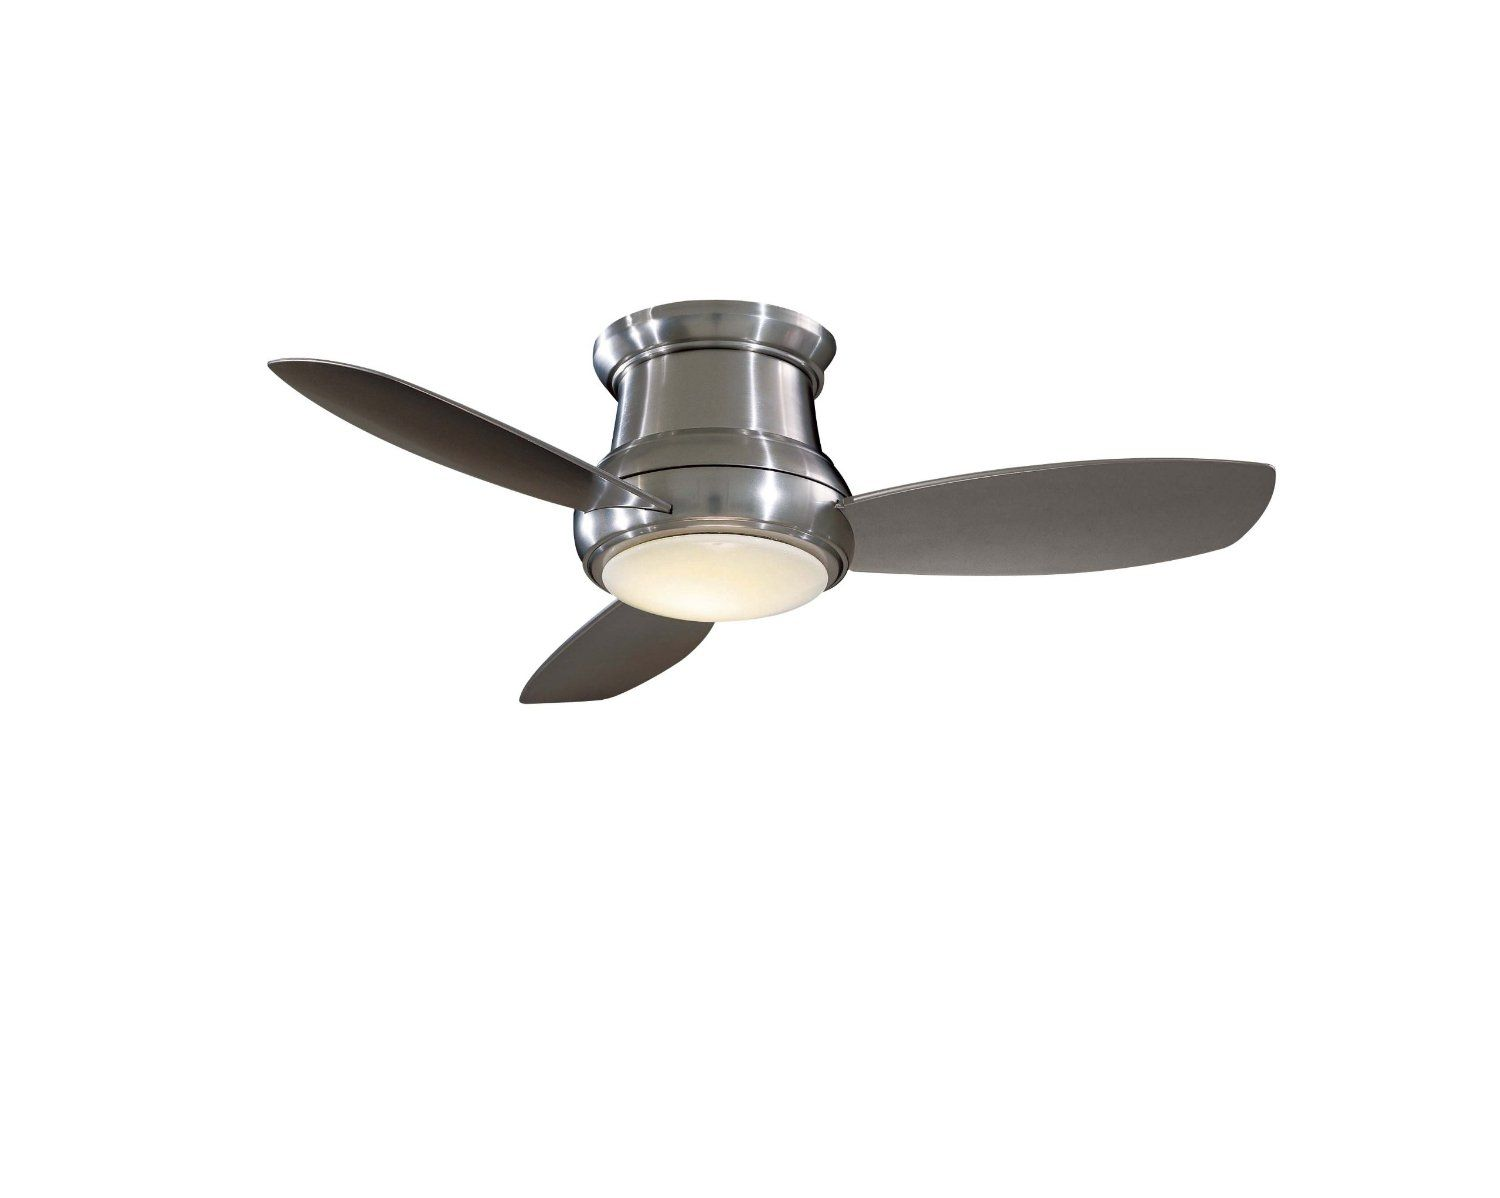 Small flush mount ceiling fans with lights http small flush mount ceiling fans with lights aloadofball Images